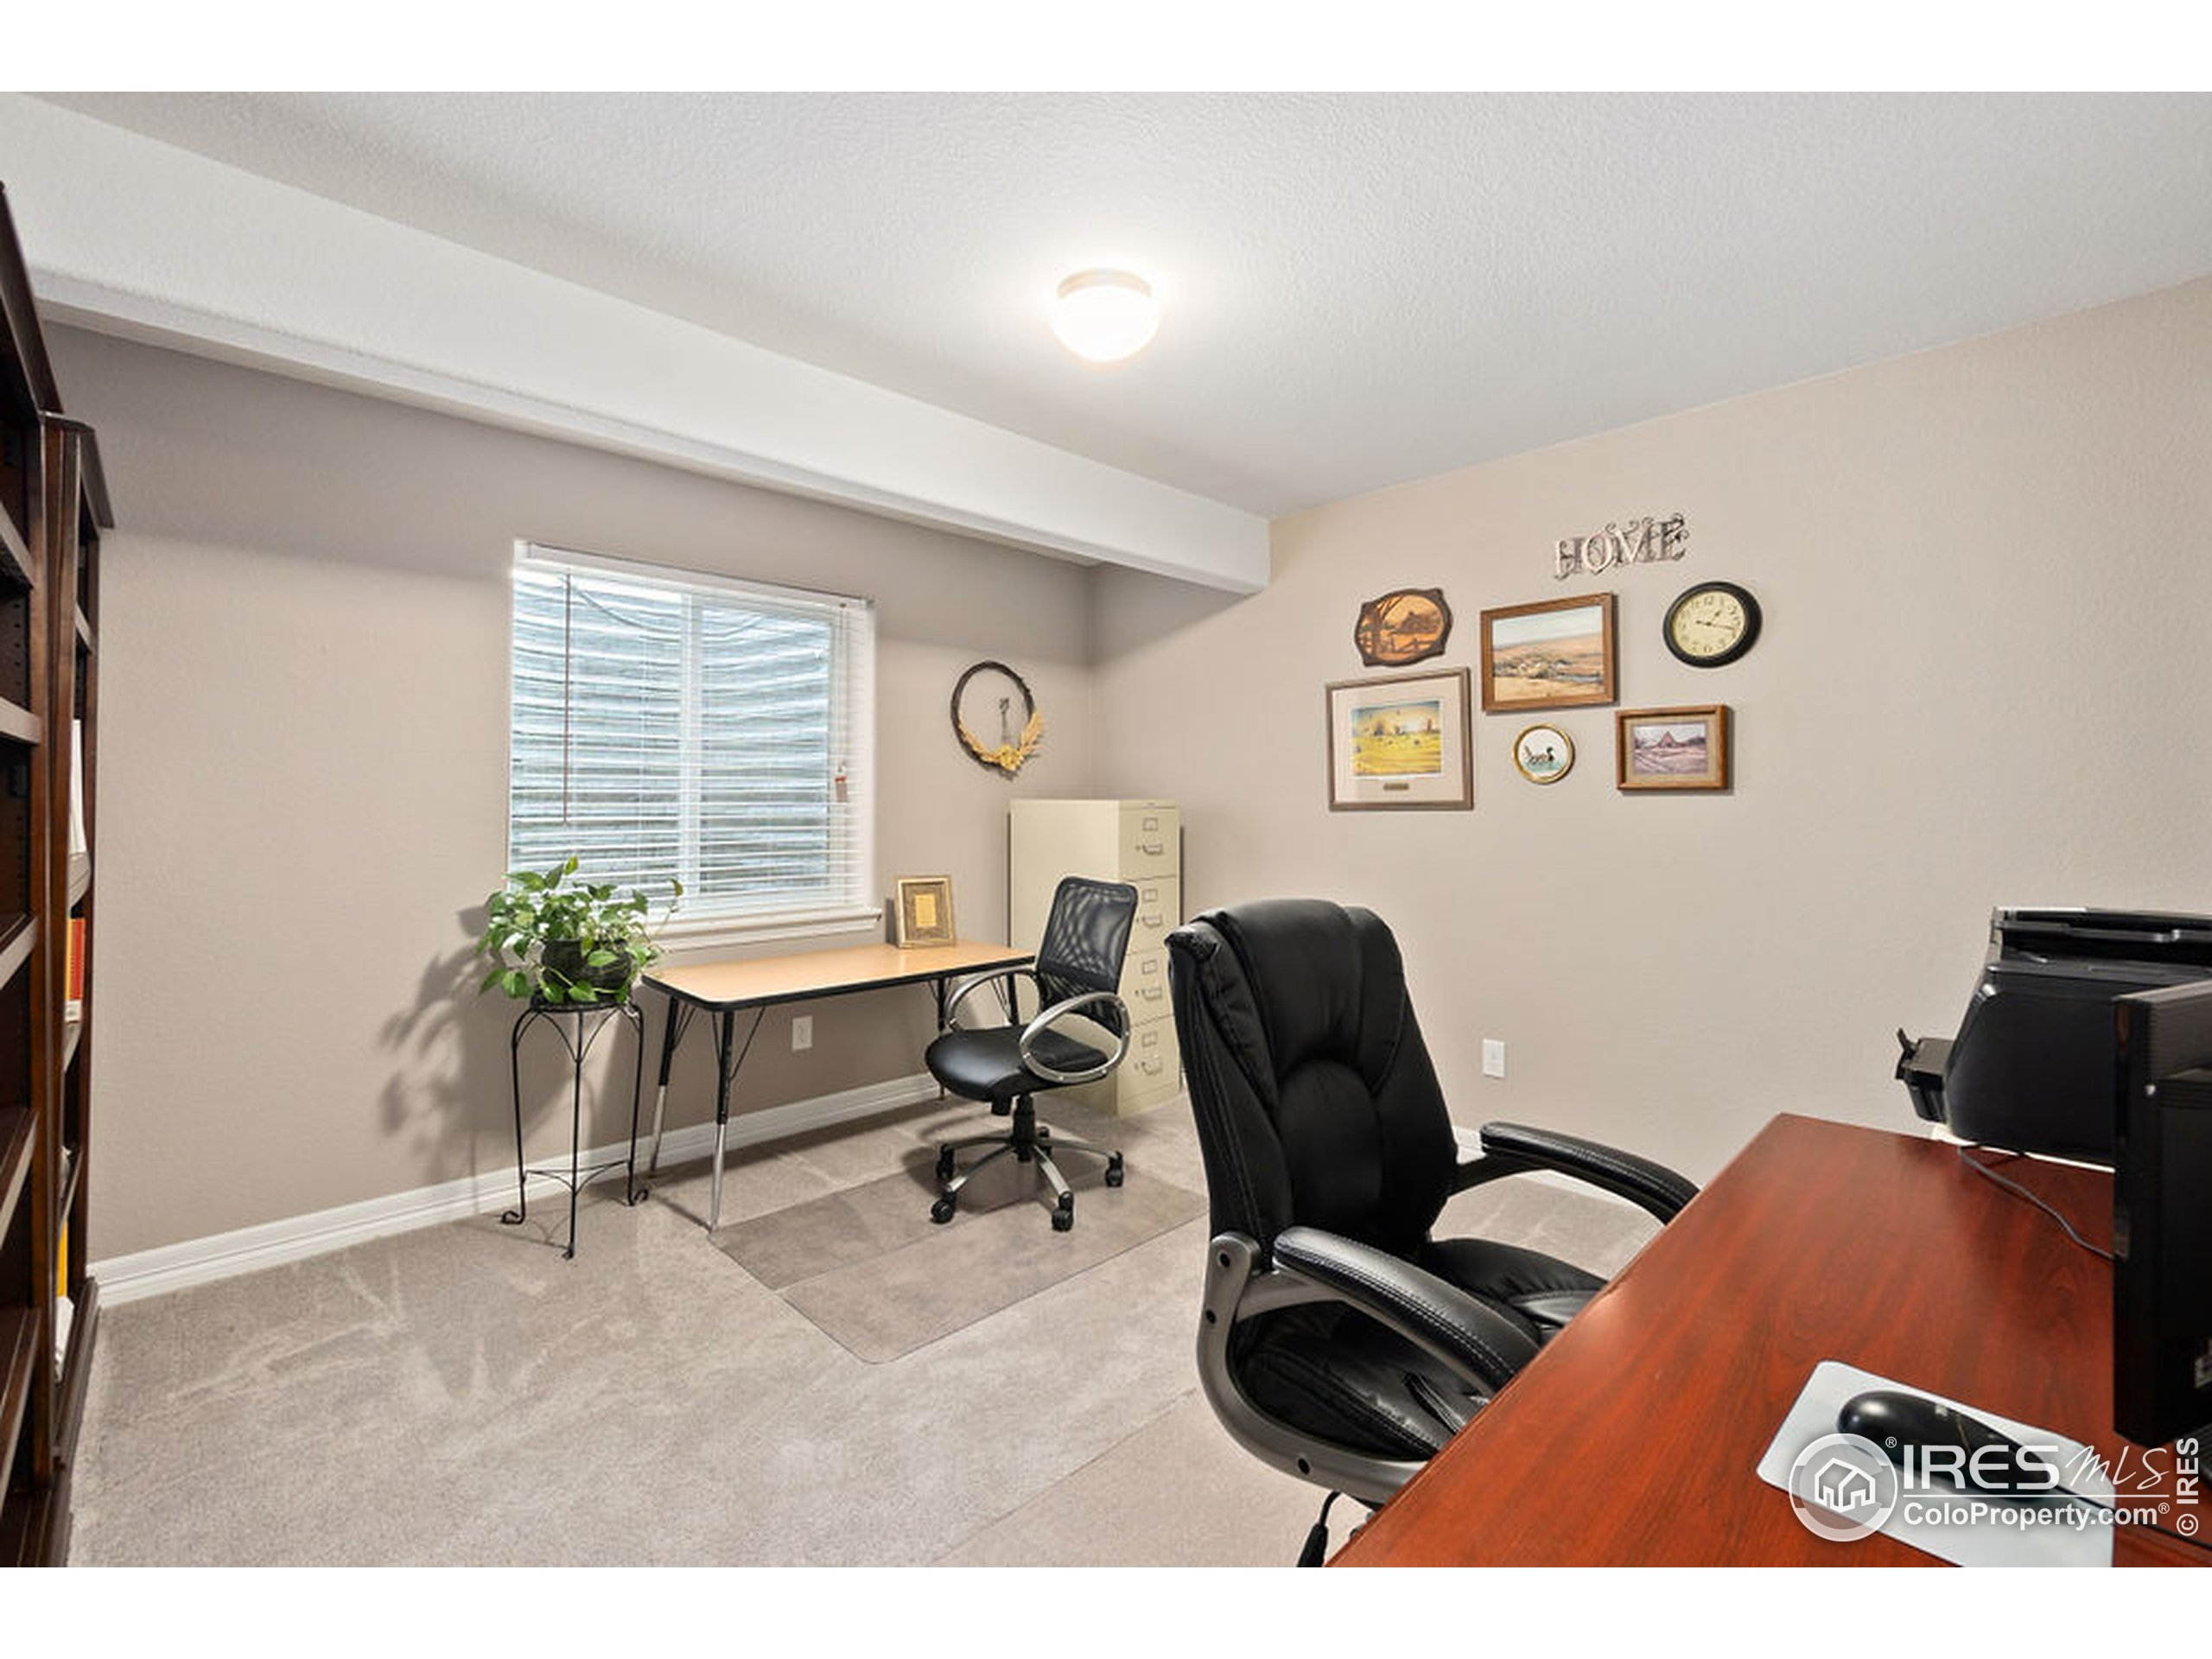 3rd bedroom with large closet used as office